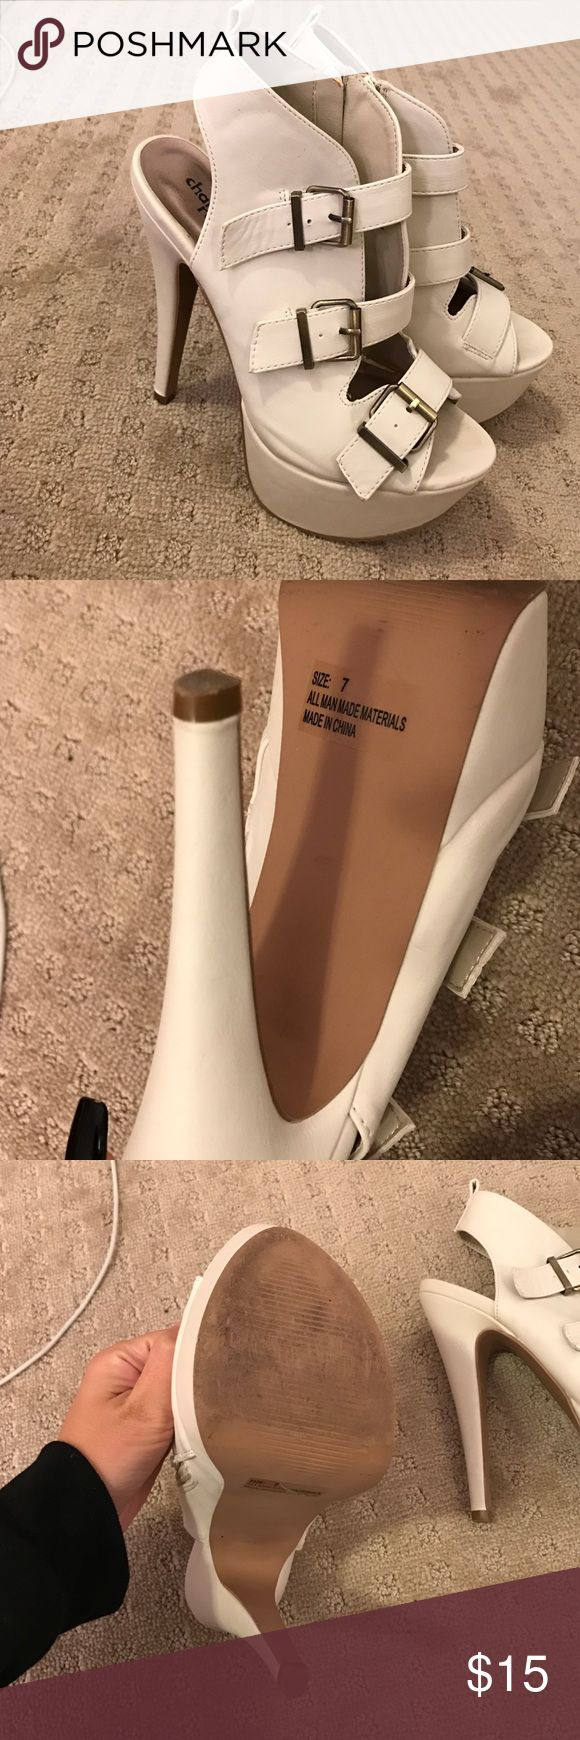 White/Cream high heels! Size 7. Only worn once! From Charlotte Russe. Has zippers on the side. Charlotte Russe Shoes Heels